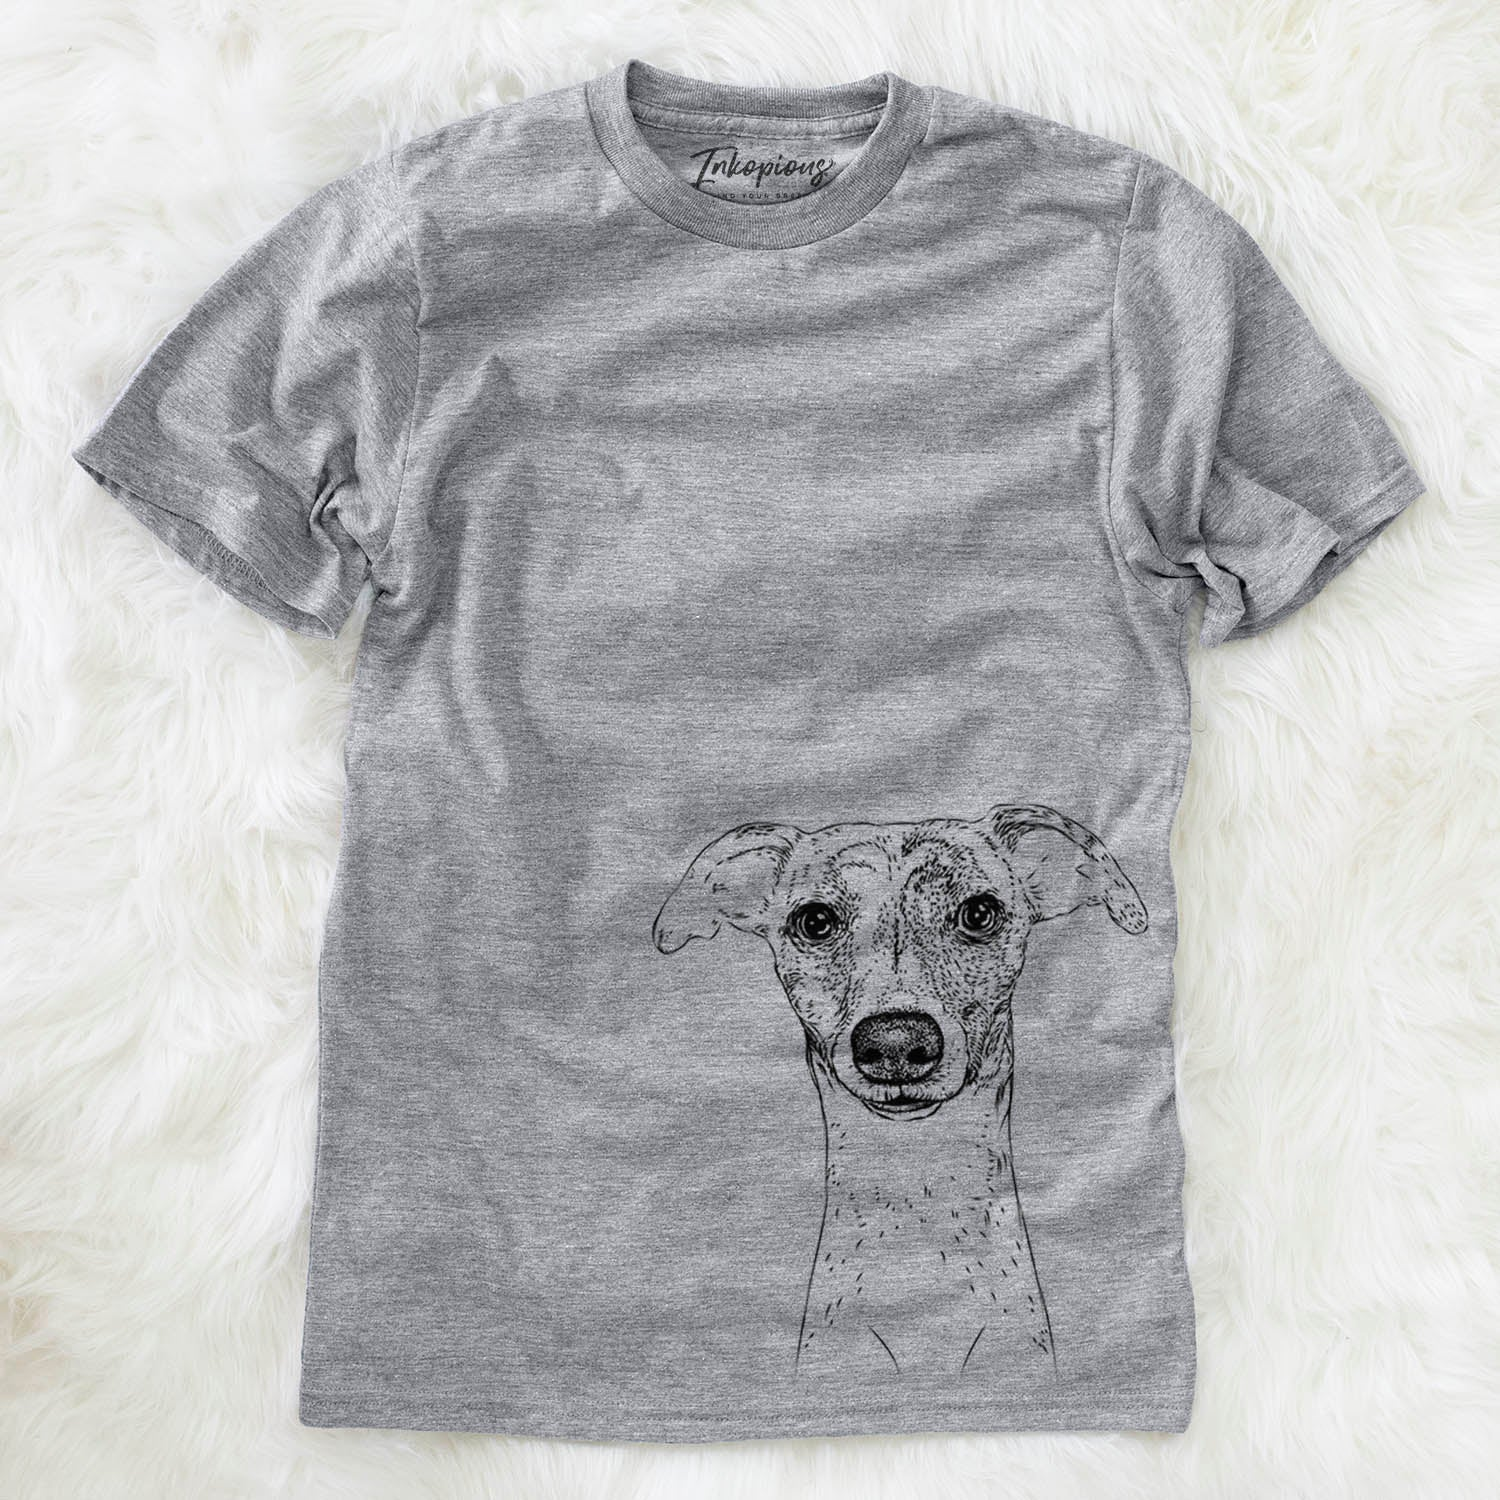 Twiggy the Whippet - Unisex Crewneck